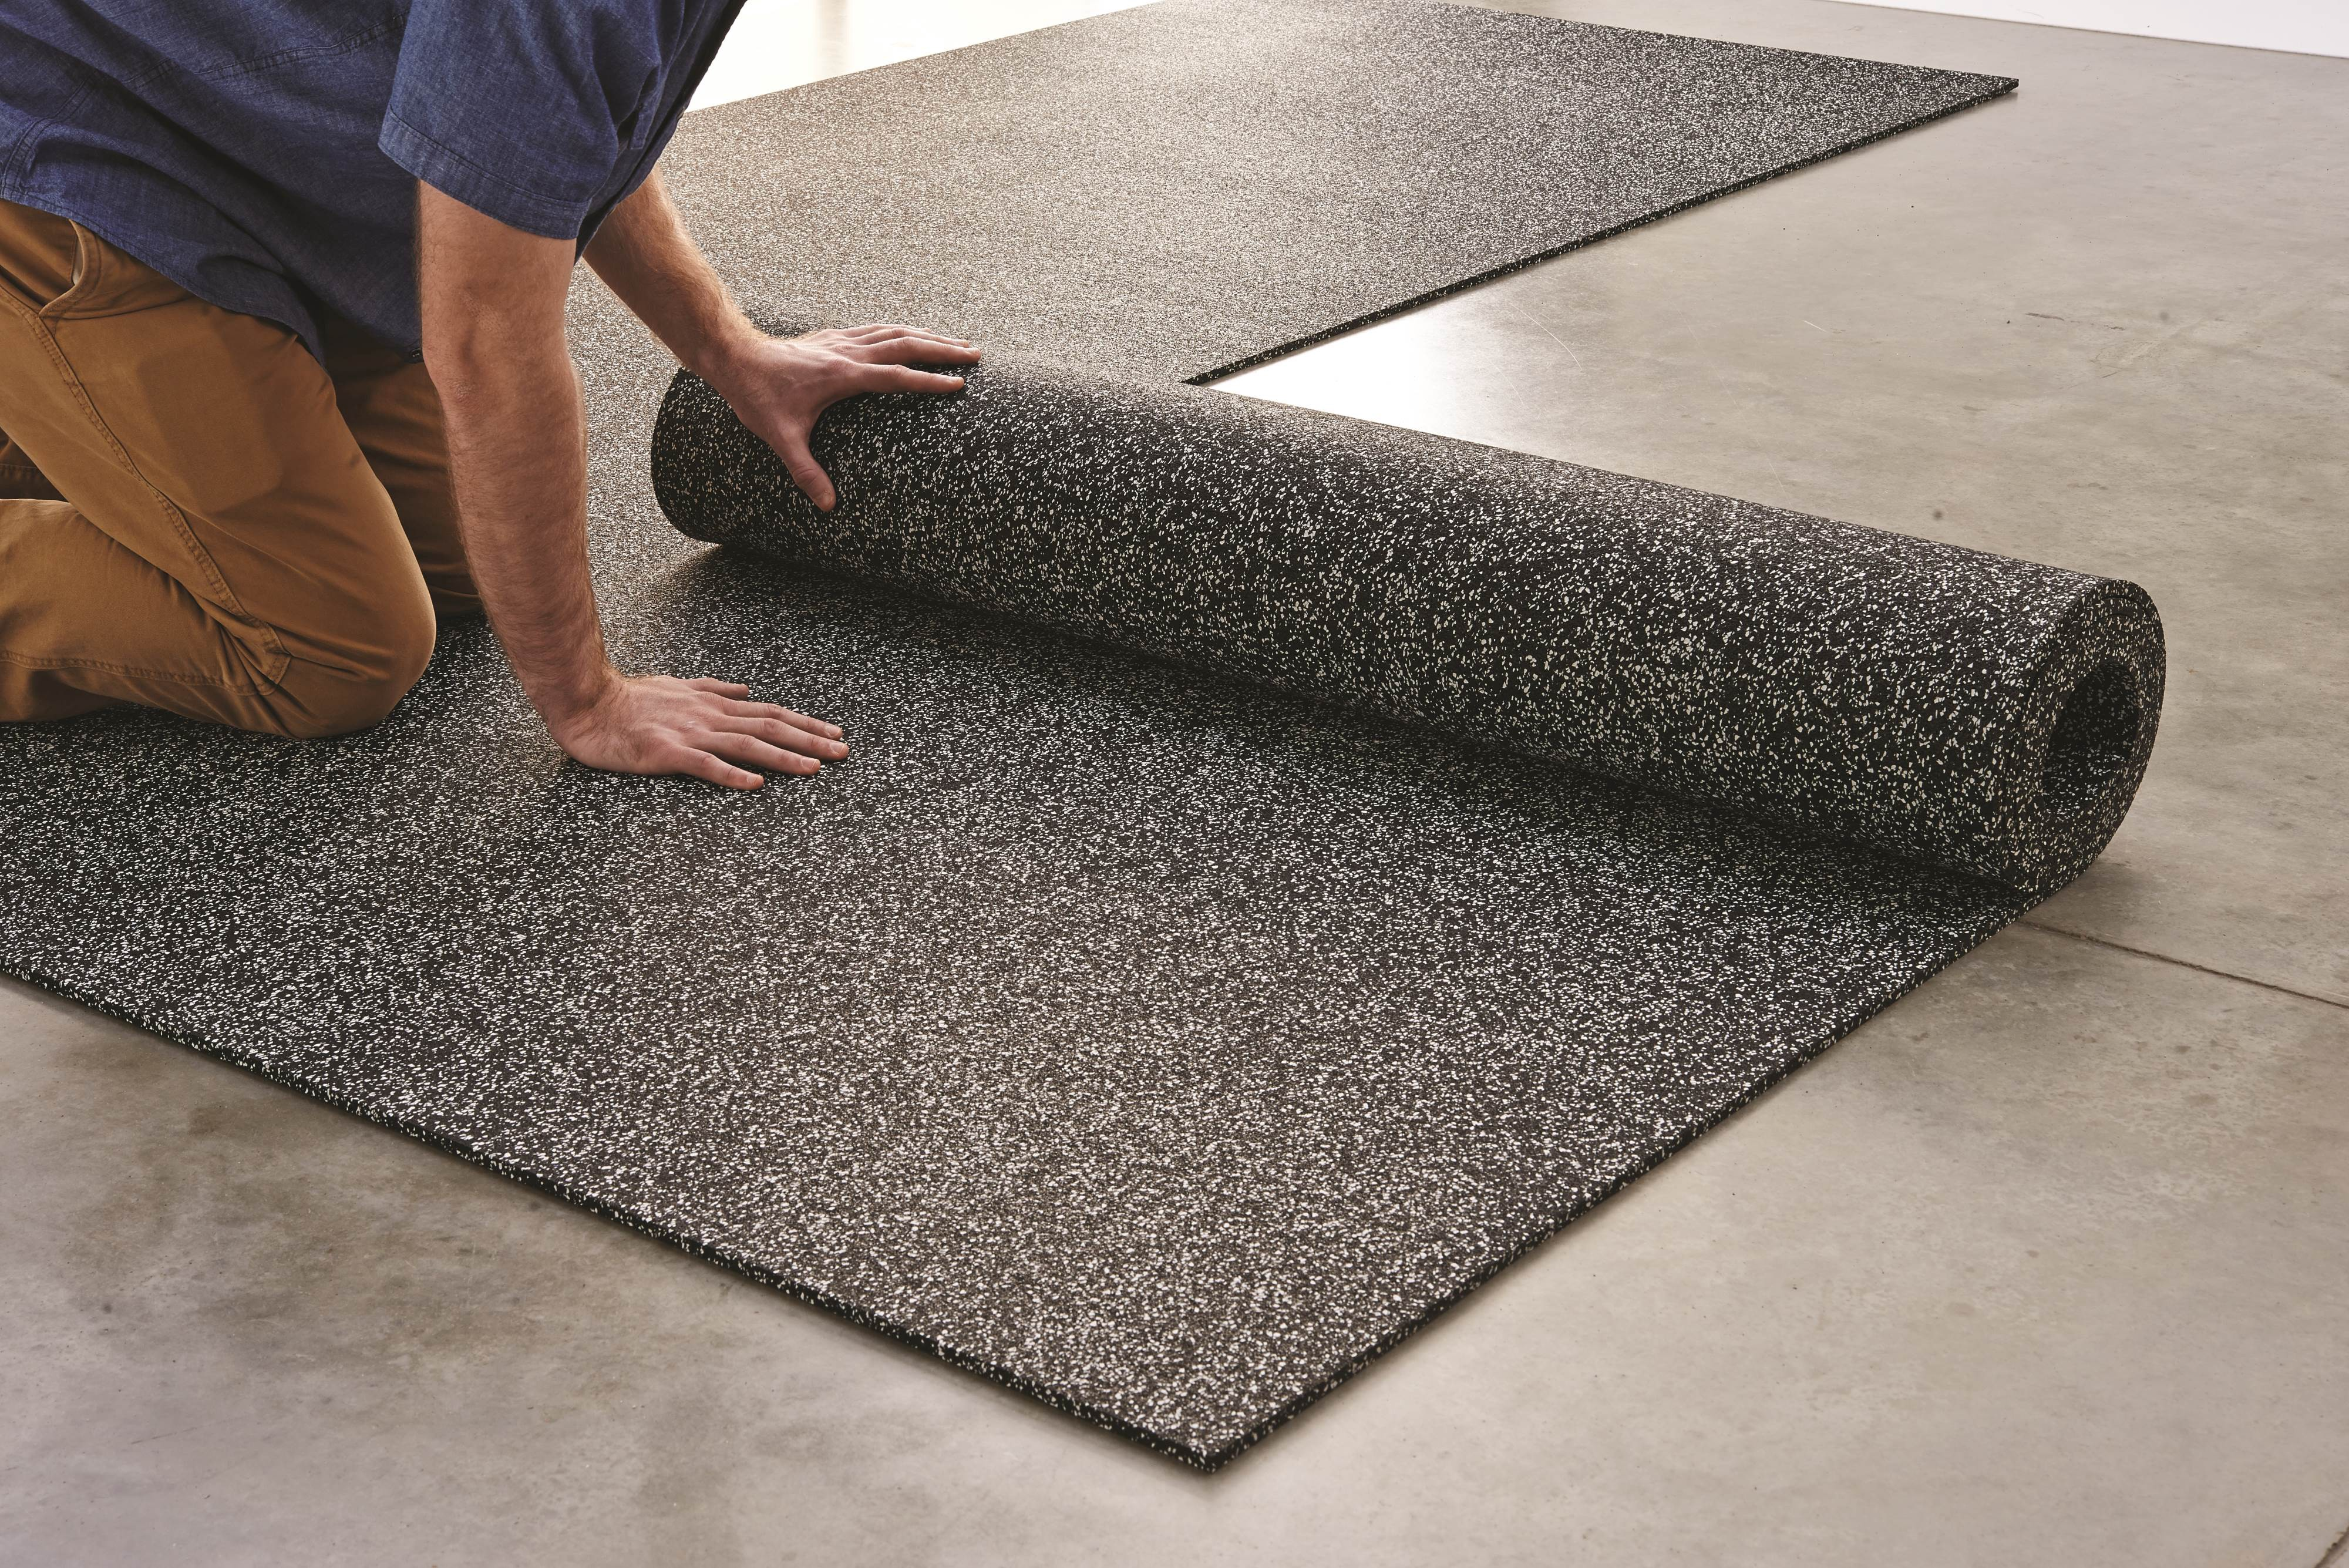 Advantages Of Rubber Matting For Floors